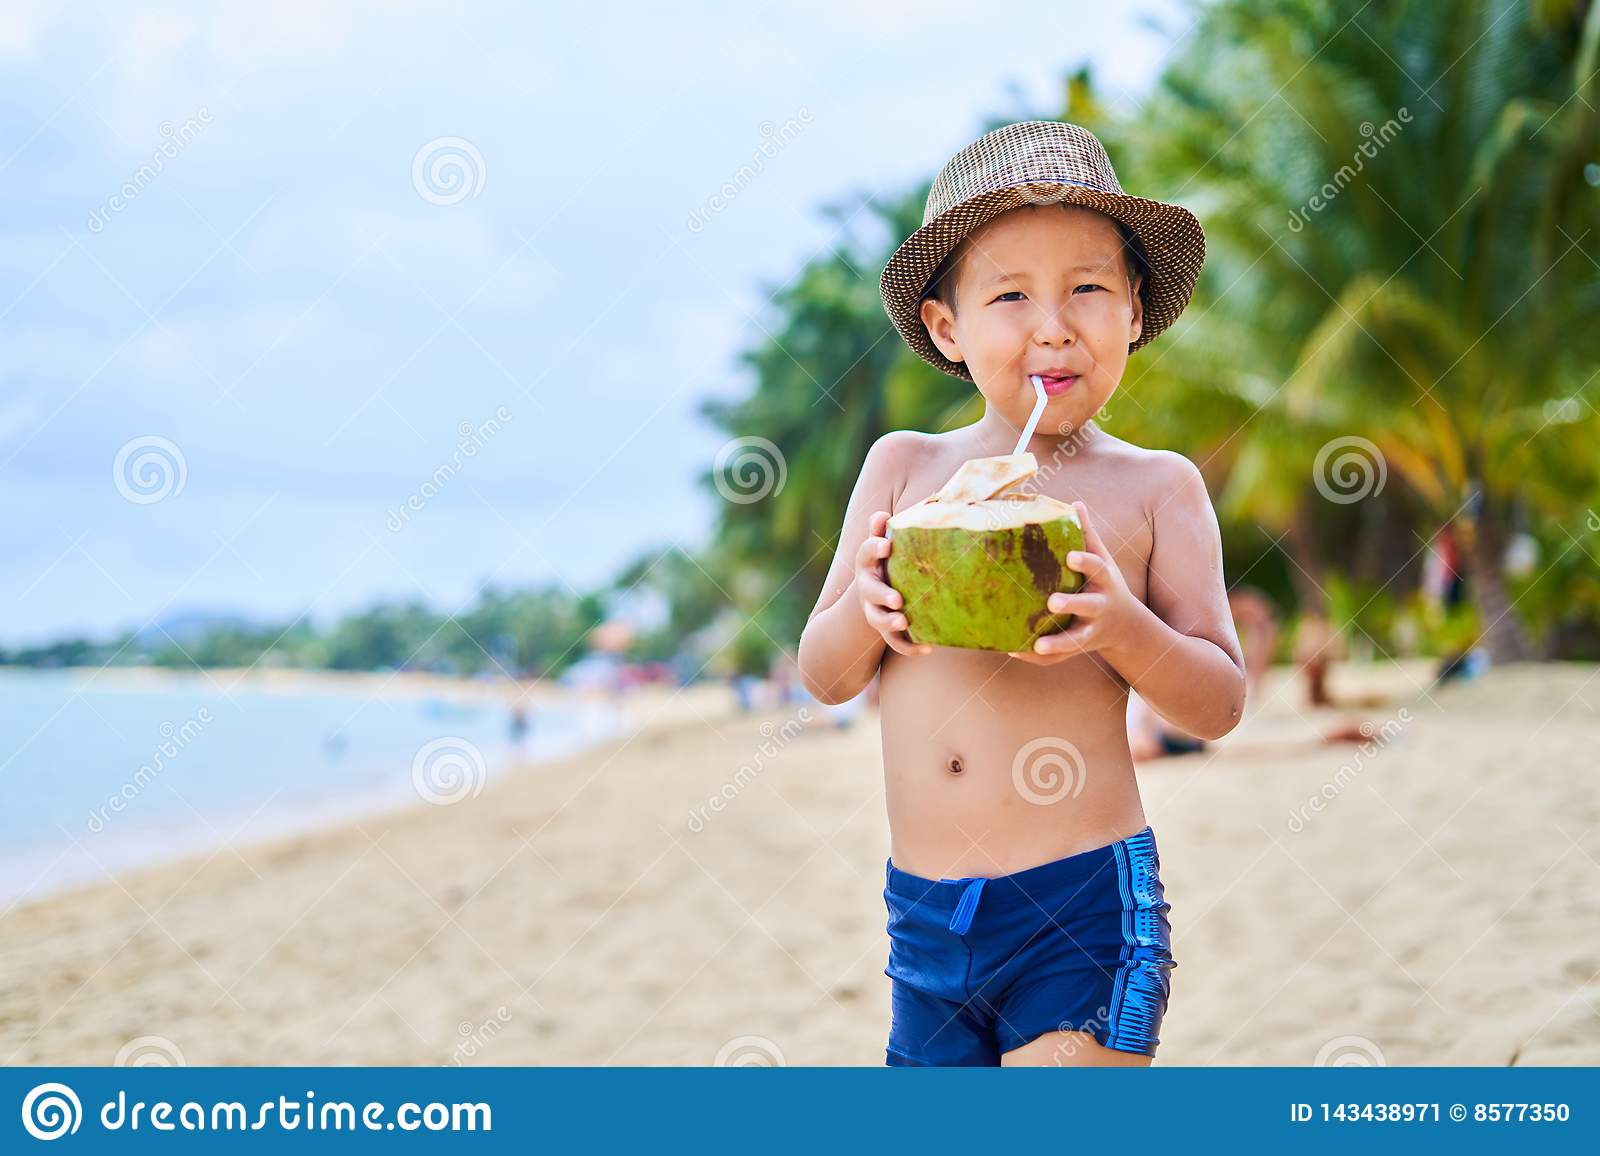 Tanned Asian boy stands on the beach in a hat and drinks coconut